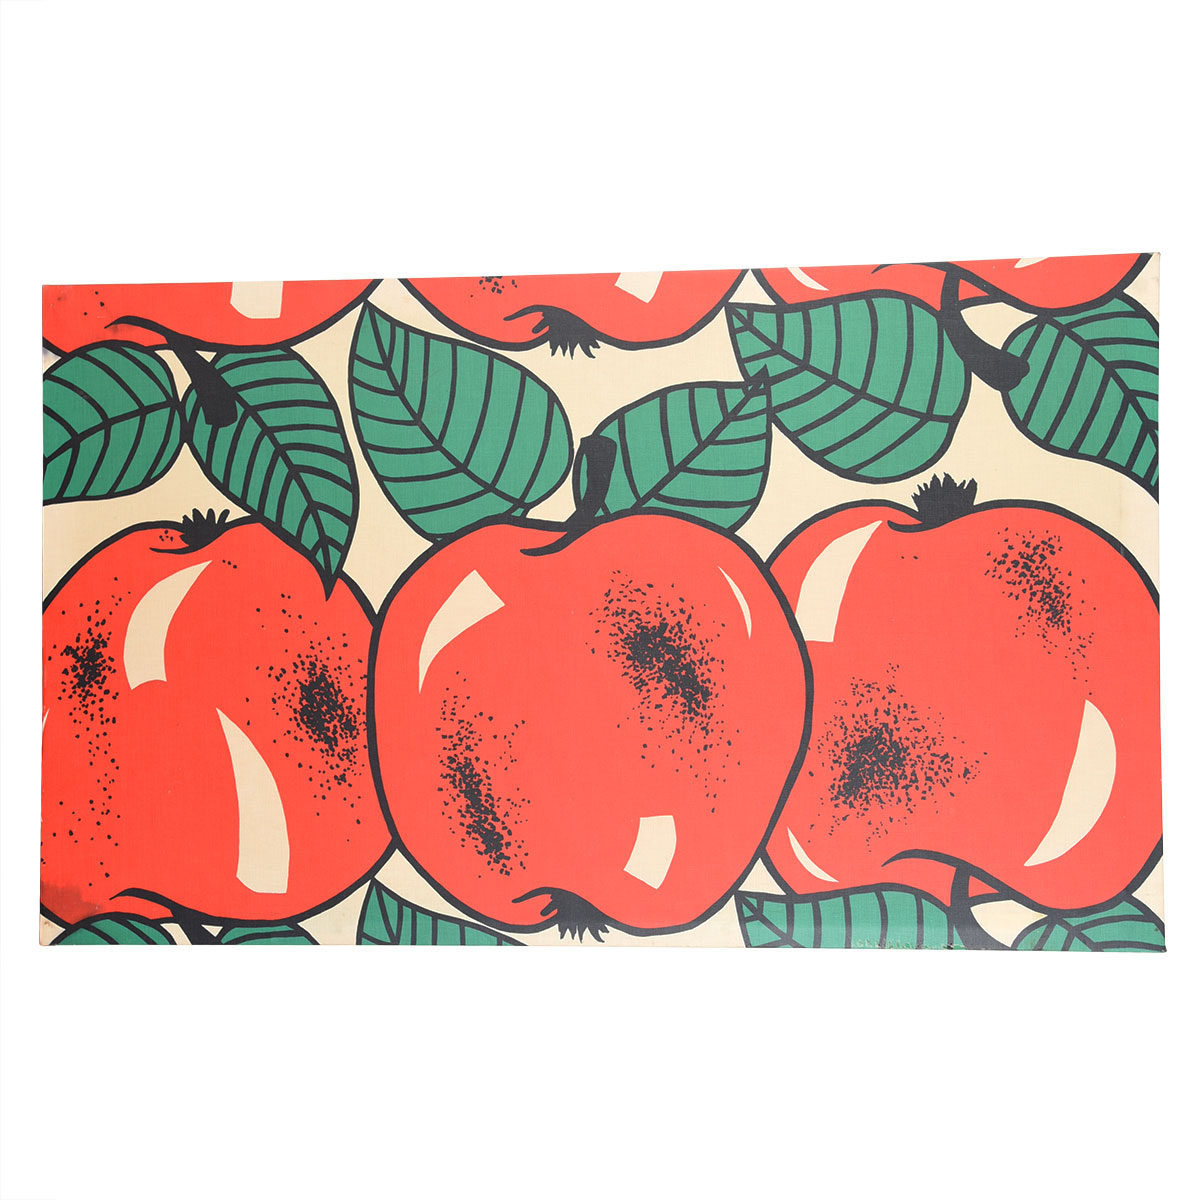 Finnish Textile Panel of Red Apples